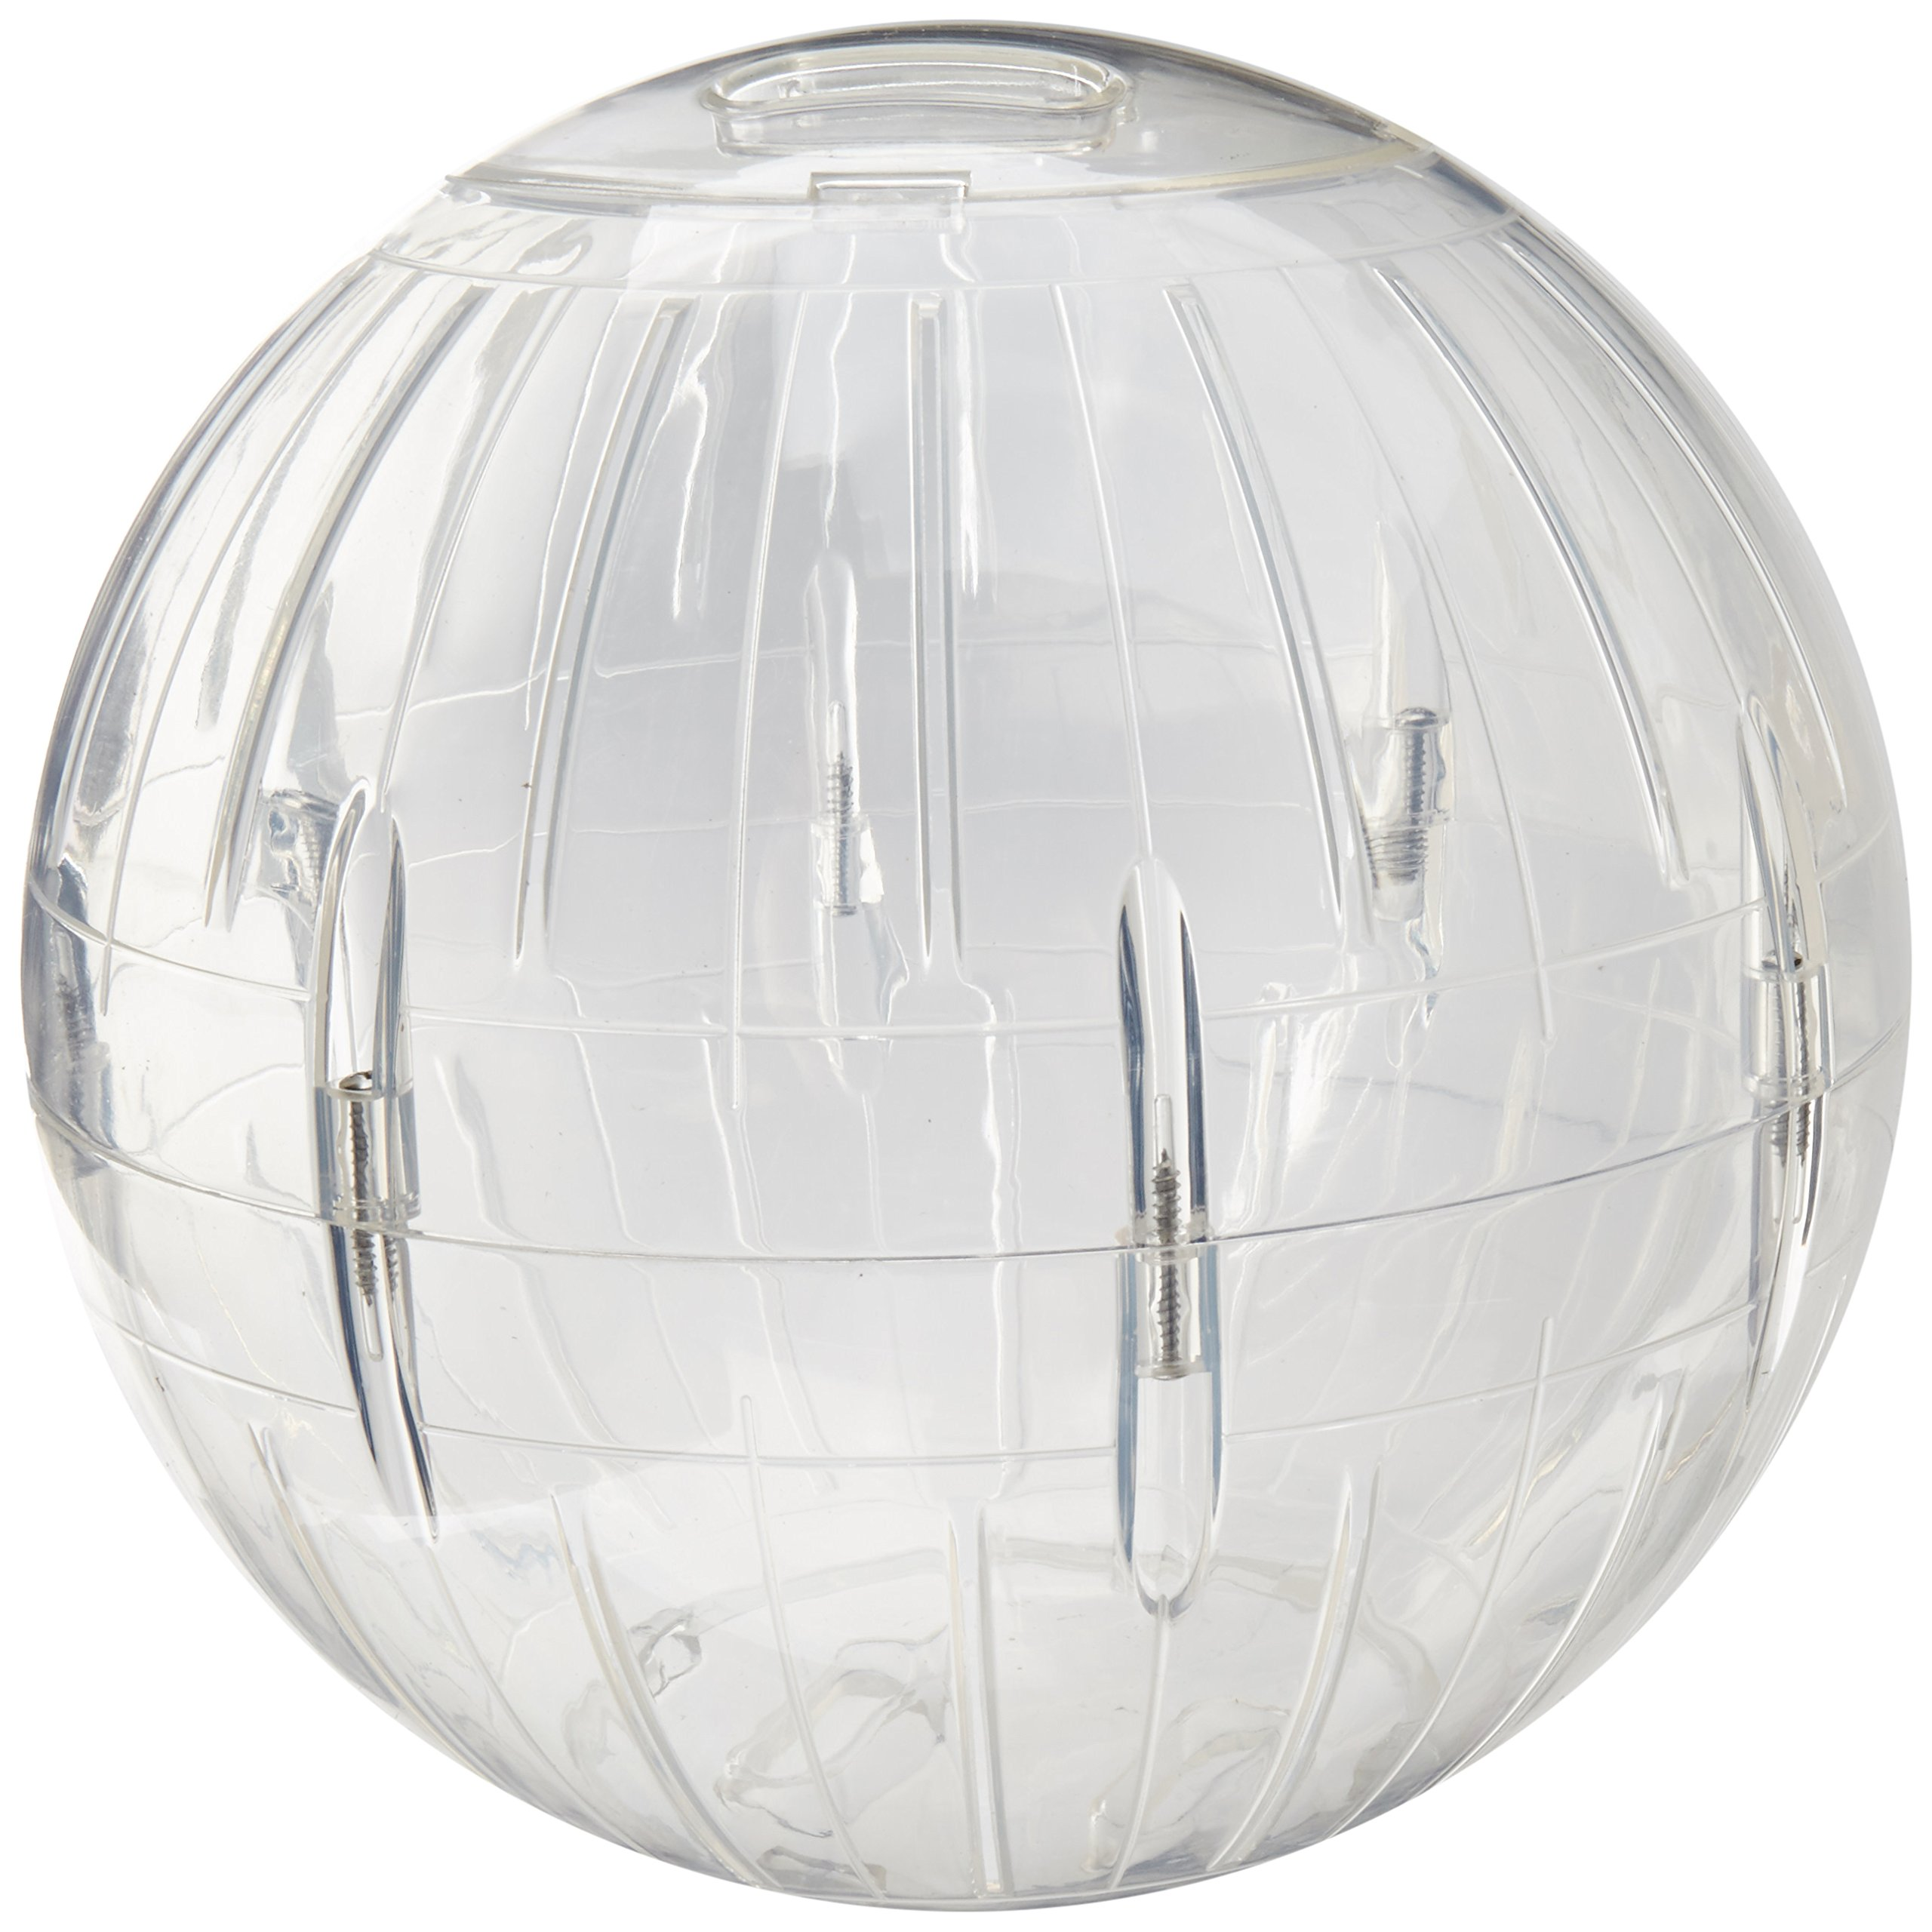 Lee's Kritter Krawler Jumbo Exercise Ball, 10-Inch, Clear